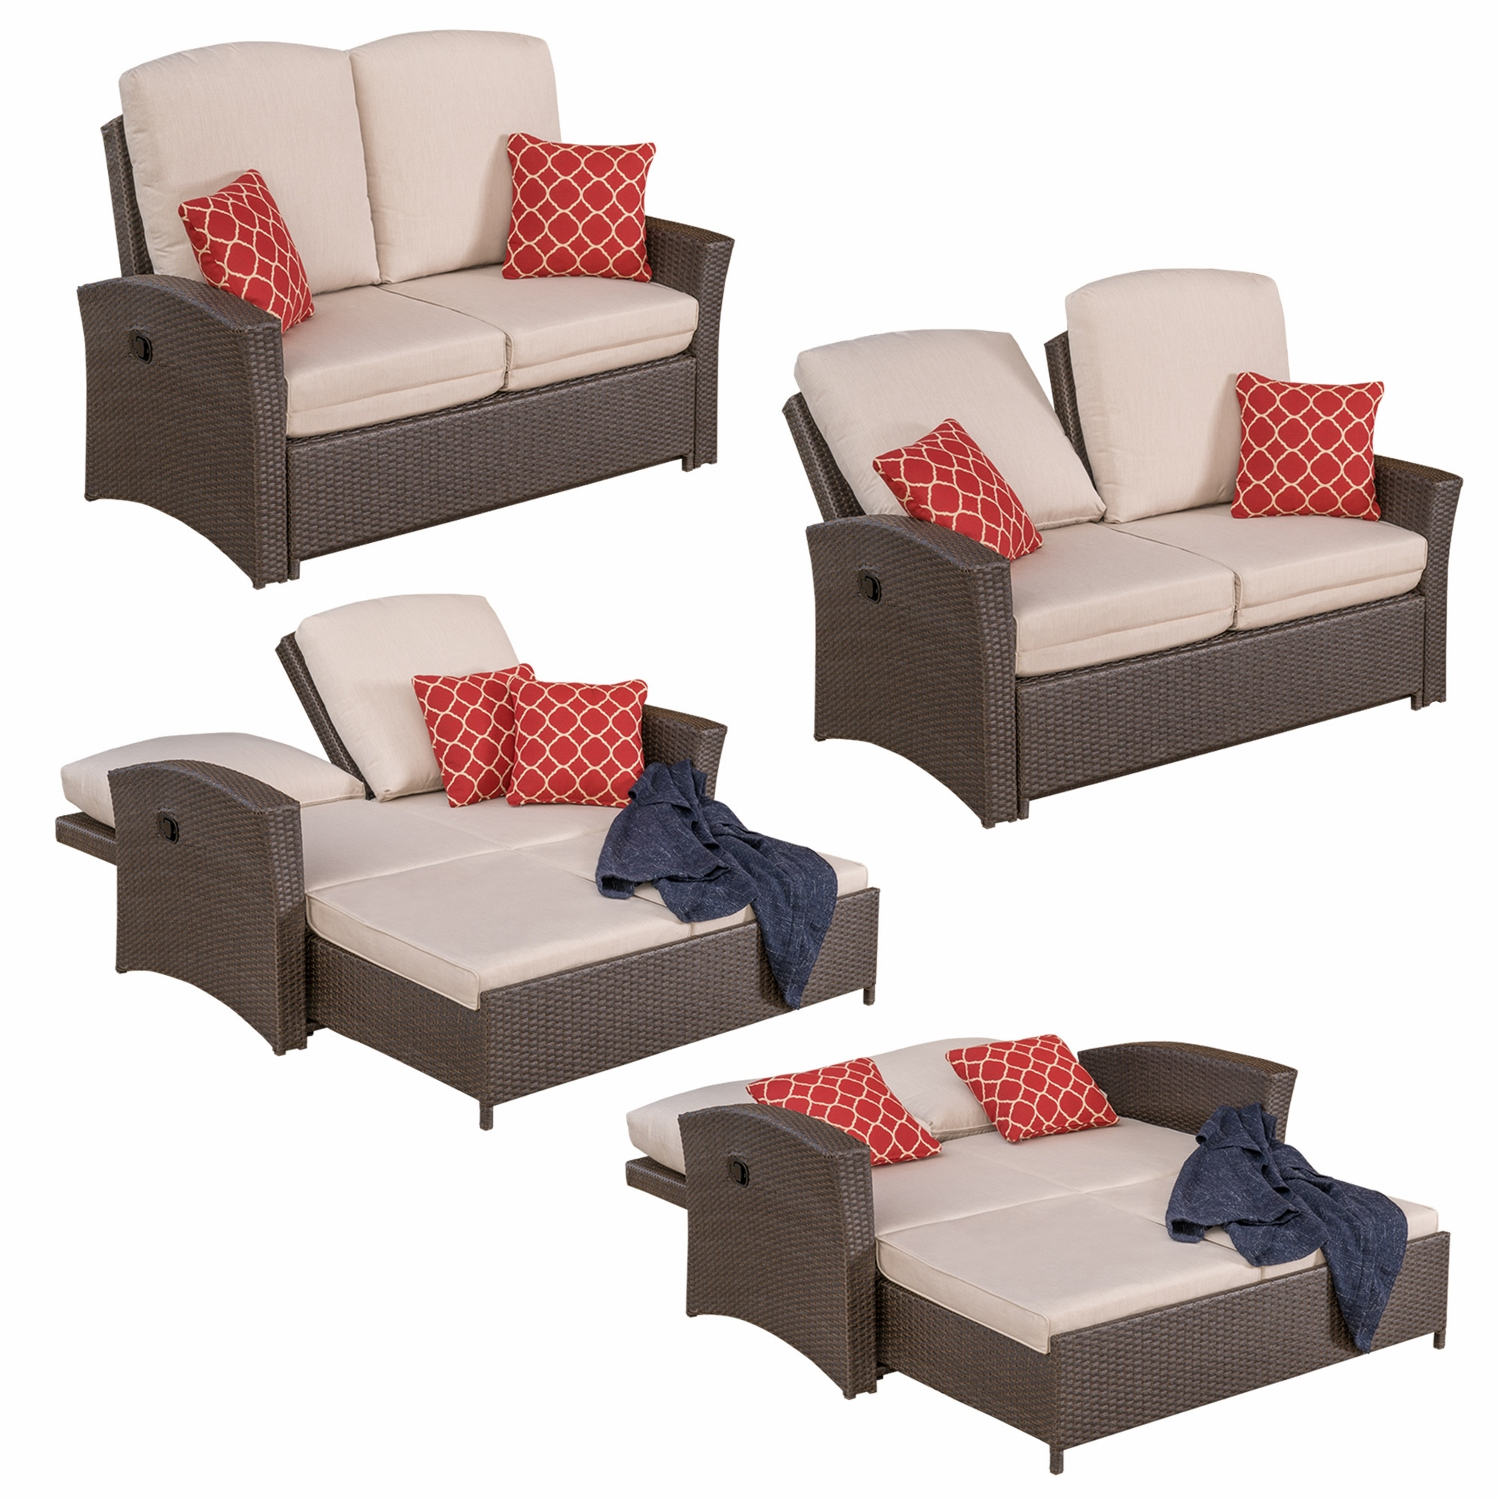 Santa Fe 6pc Deep Seating Collection Mission Hills Furniture